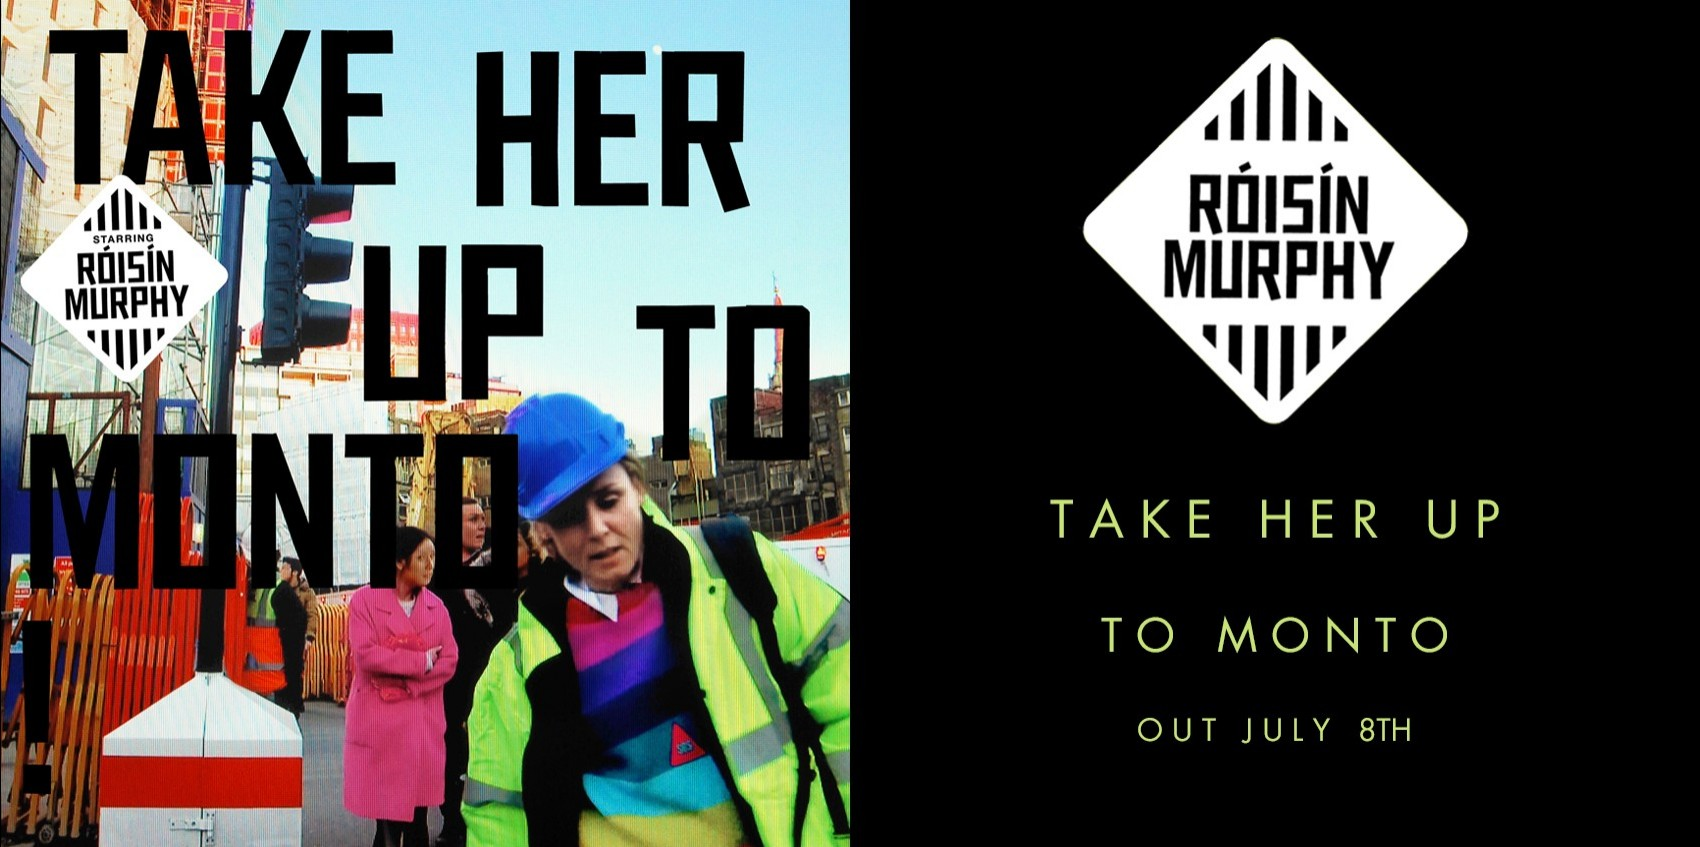 Róisín Murphy \'Take Her Up To Monto\' - Out 8th July 2016